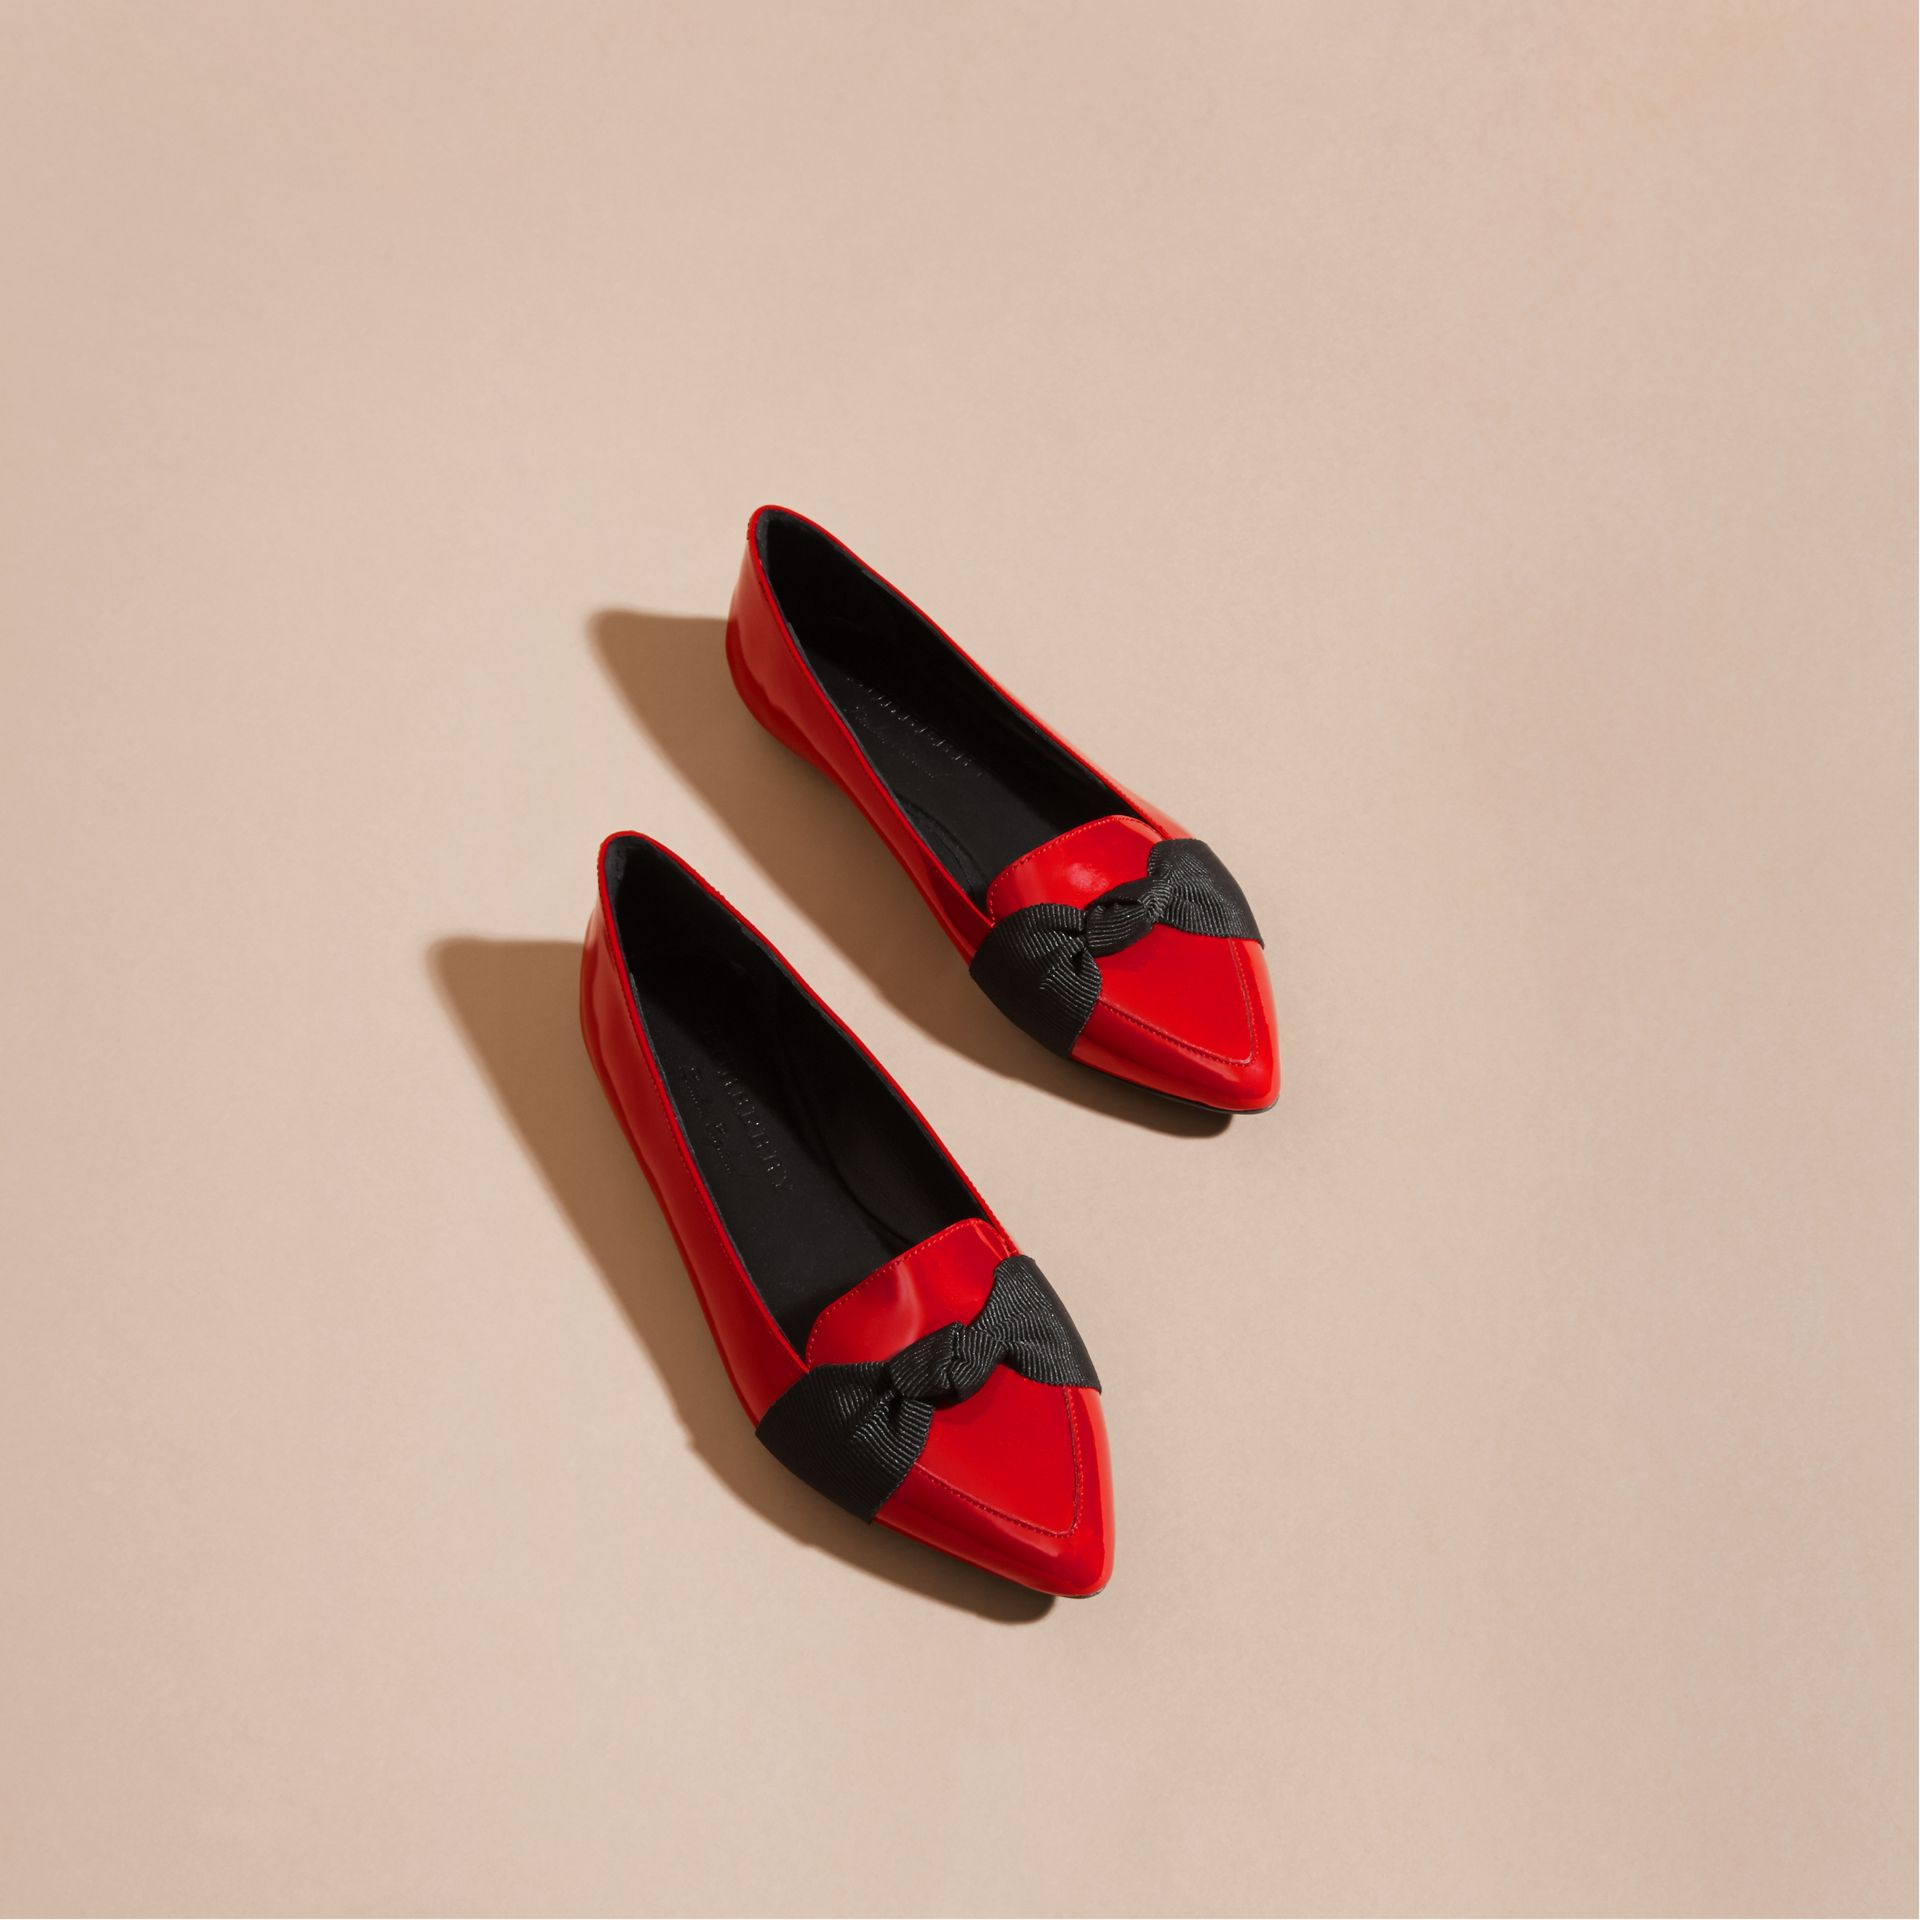 Peony red Patent Leather Loafers with Grosgrain Bow Peony Red - gallery image 3